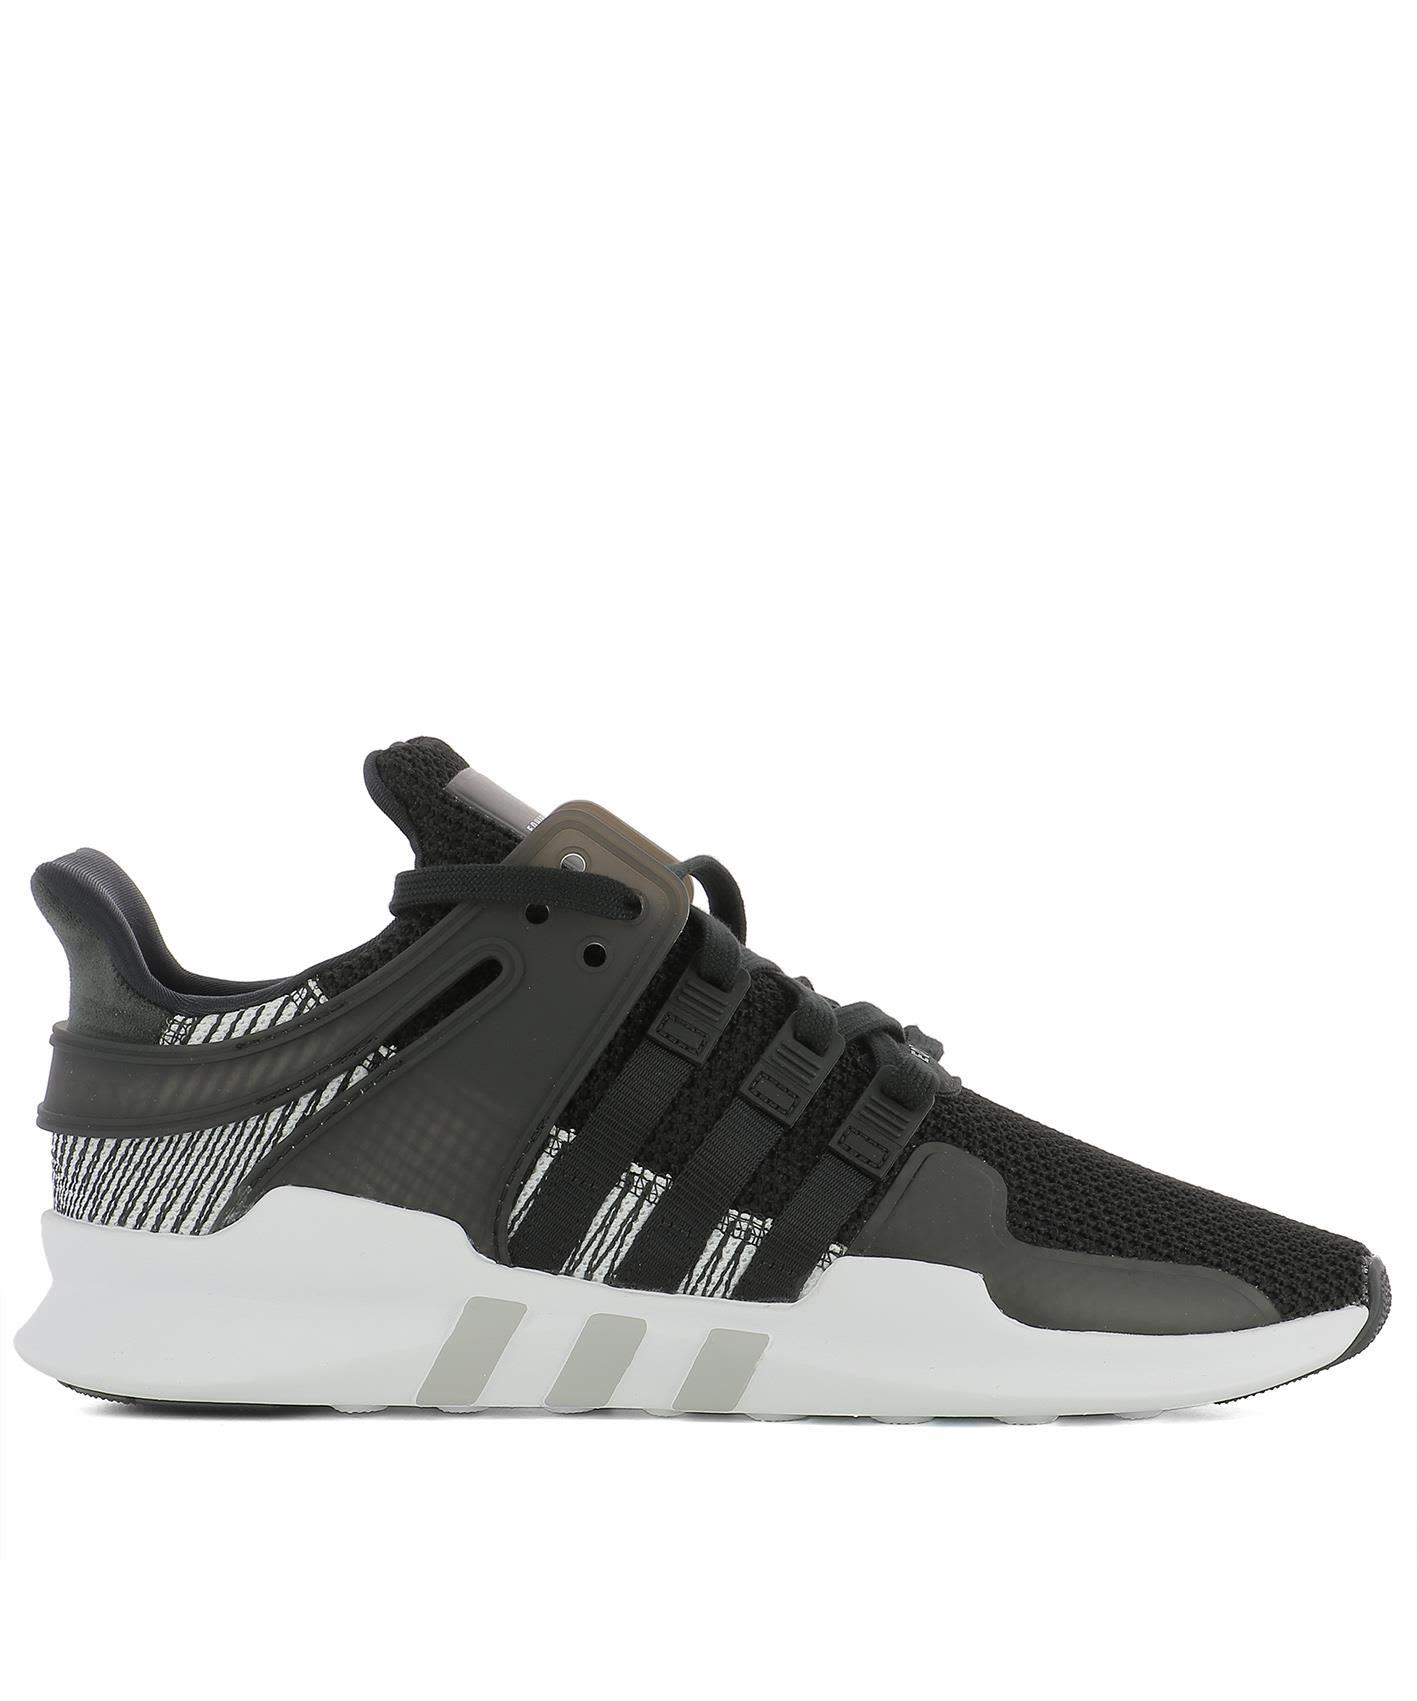 official photos 135e2 91579 Adidas Men's Eqt Support Adv Sneakers From Finish Line in Black